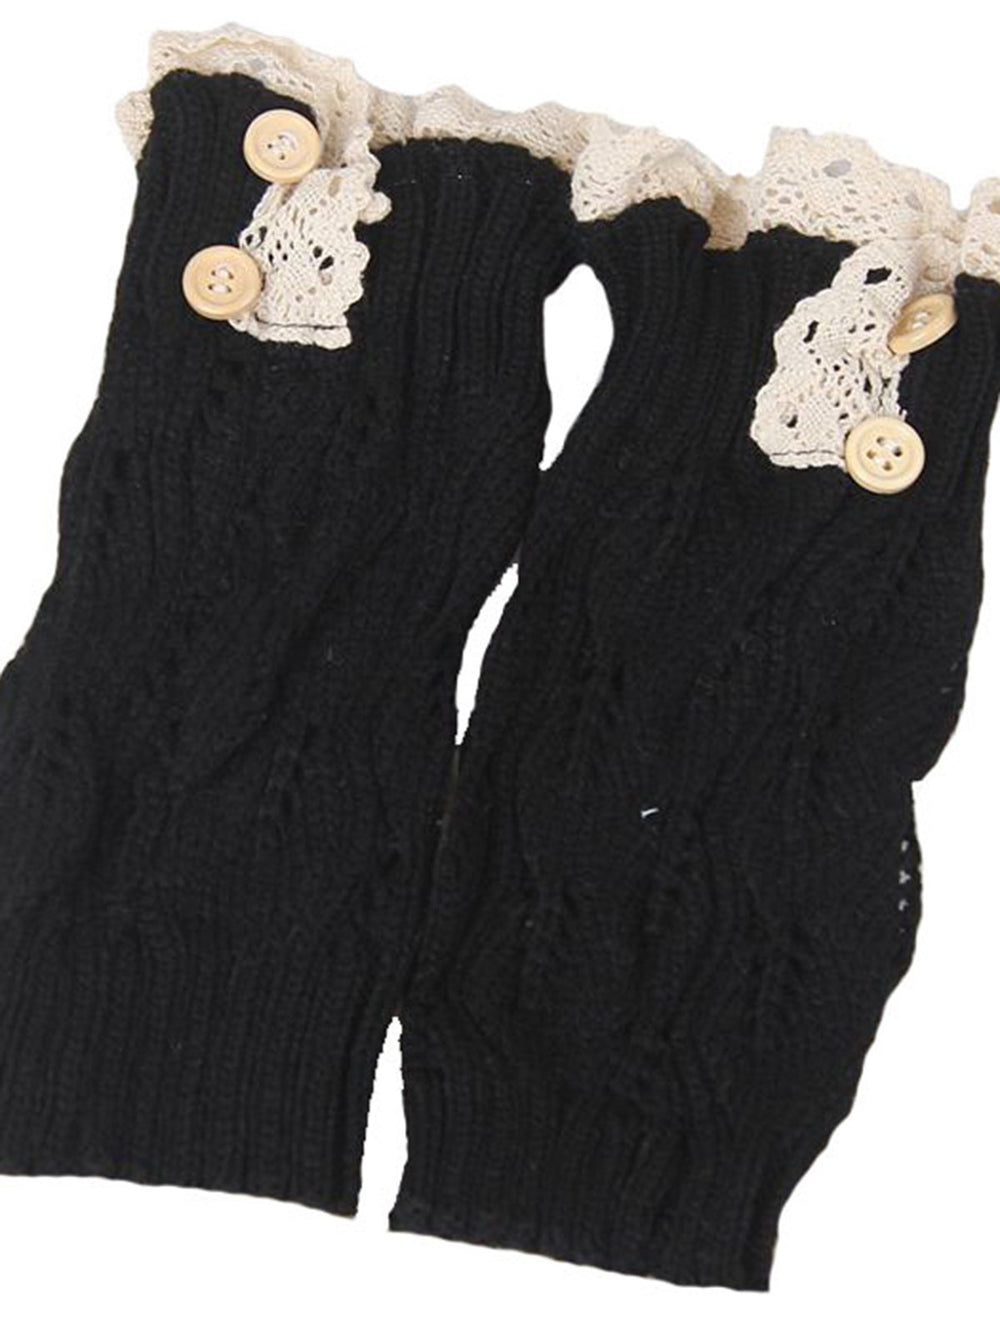 Irisruby Women Winter Boot Cuffs Fashion Button Down Short Leg Warm Knit Lace Shark Tank Leg Boot Cuffs